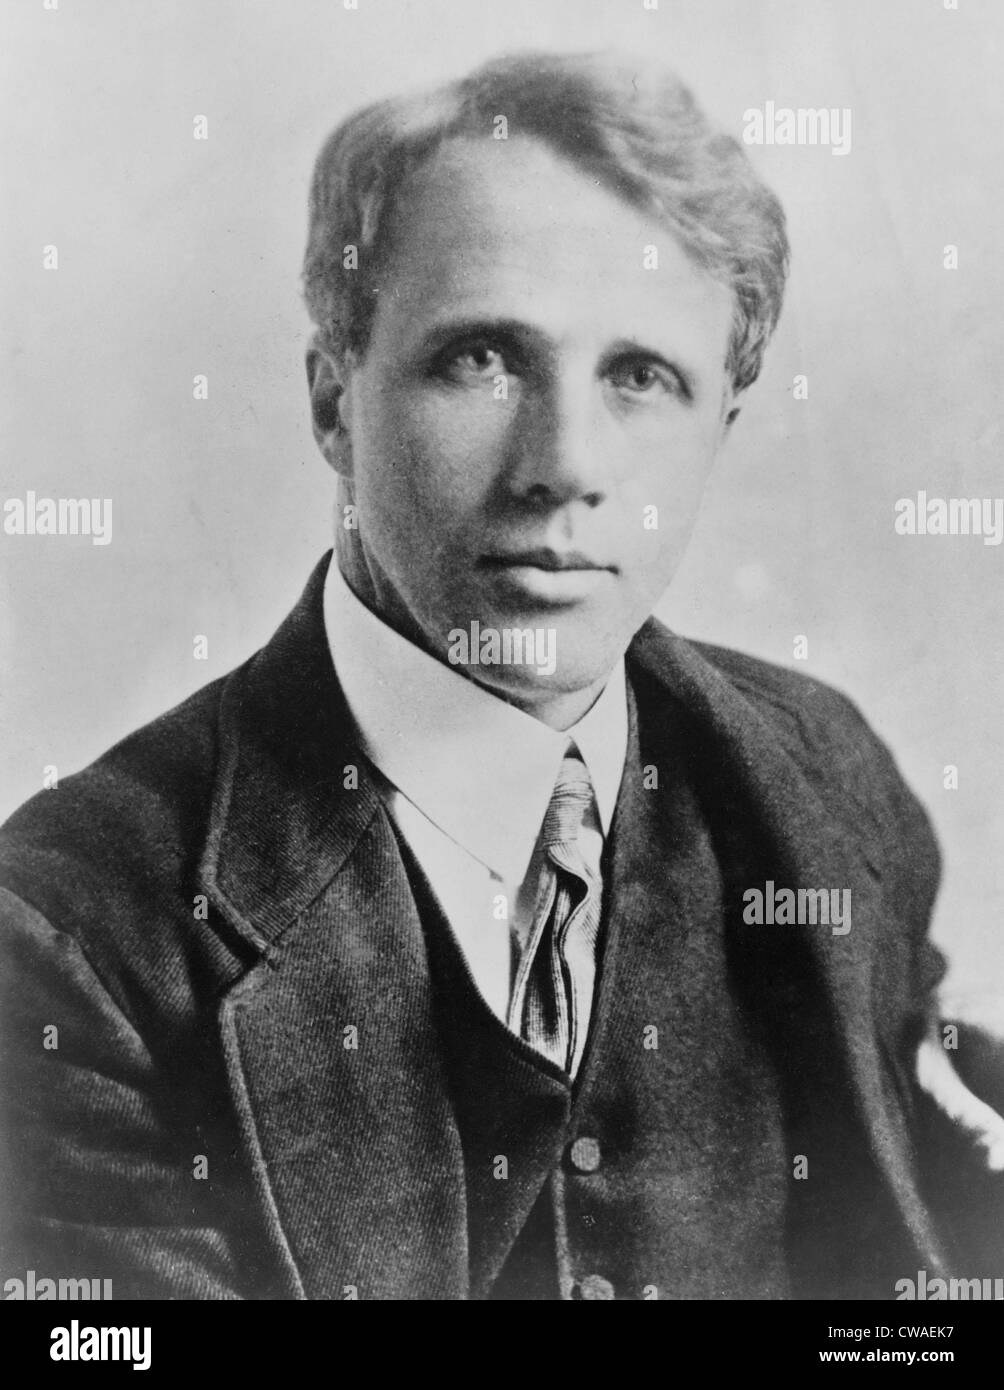 Robert Frost (1874-1963), American poet, ca. 1915. In 1913 Frost published his first book of poems, A BOYS WILL, Stock Photo